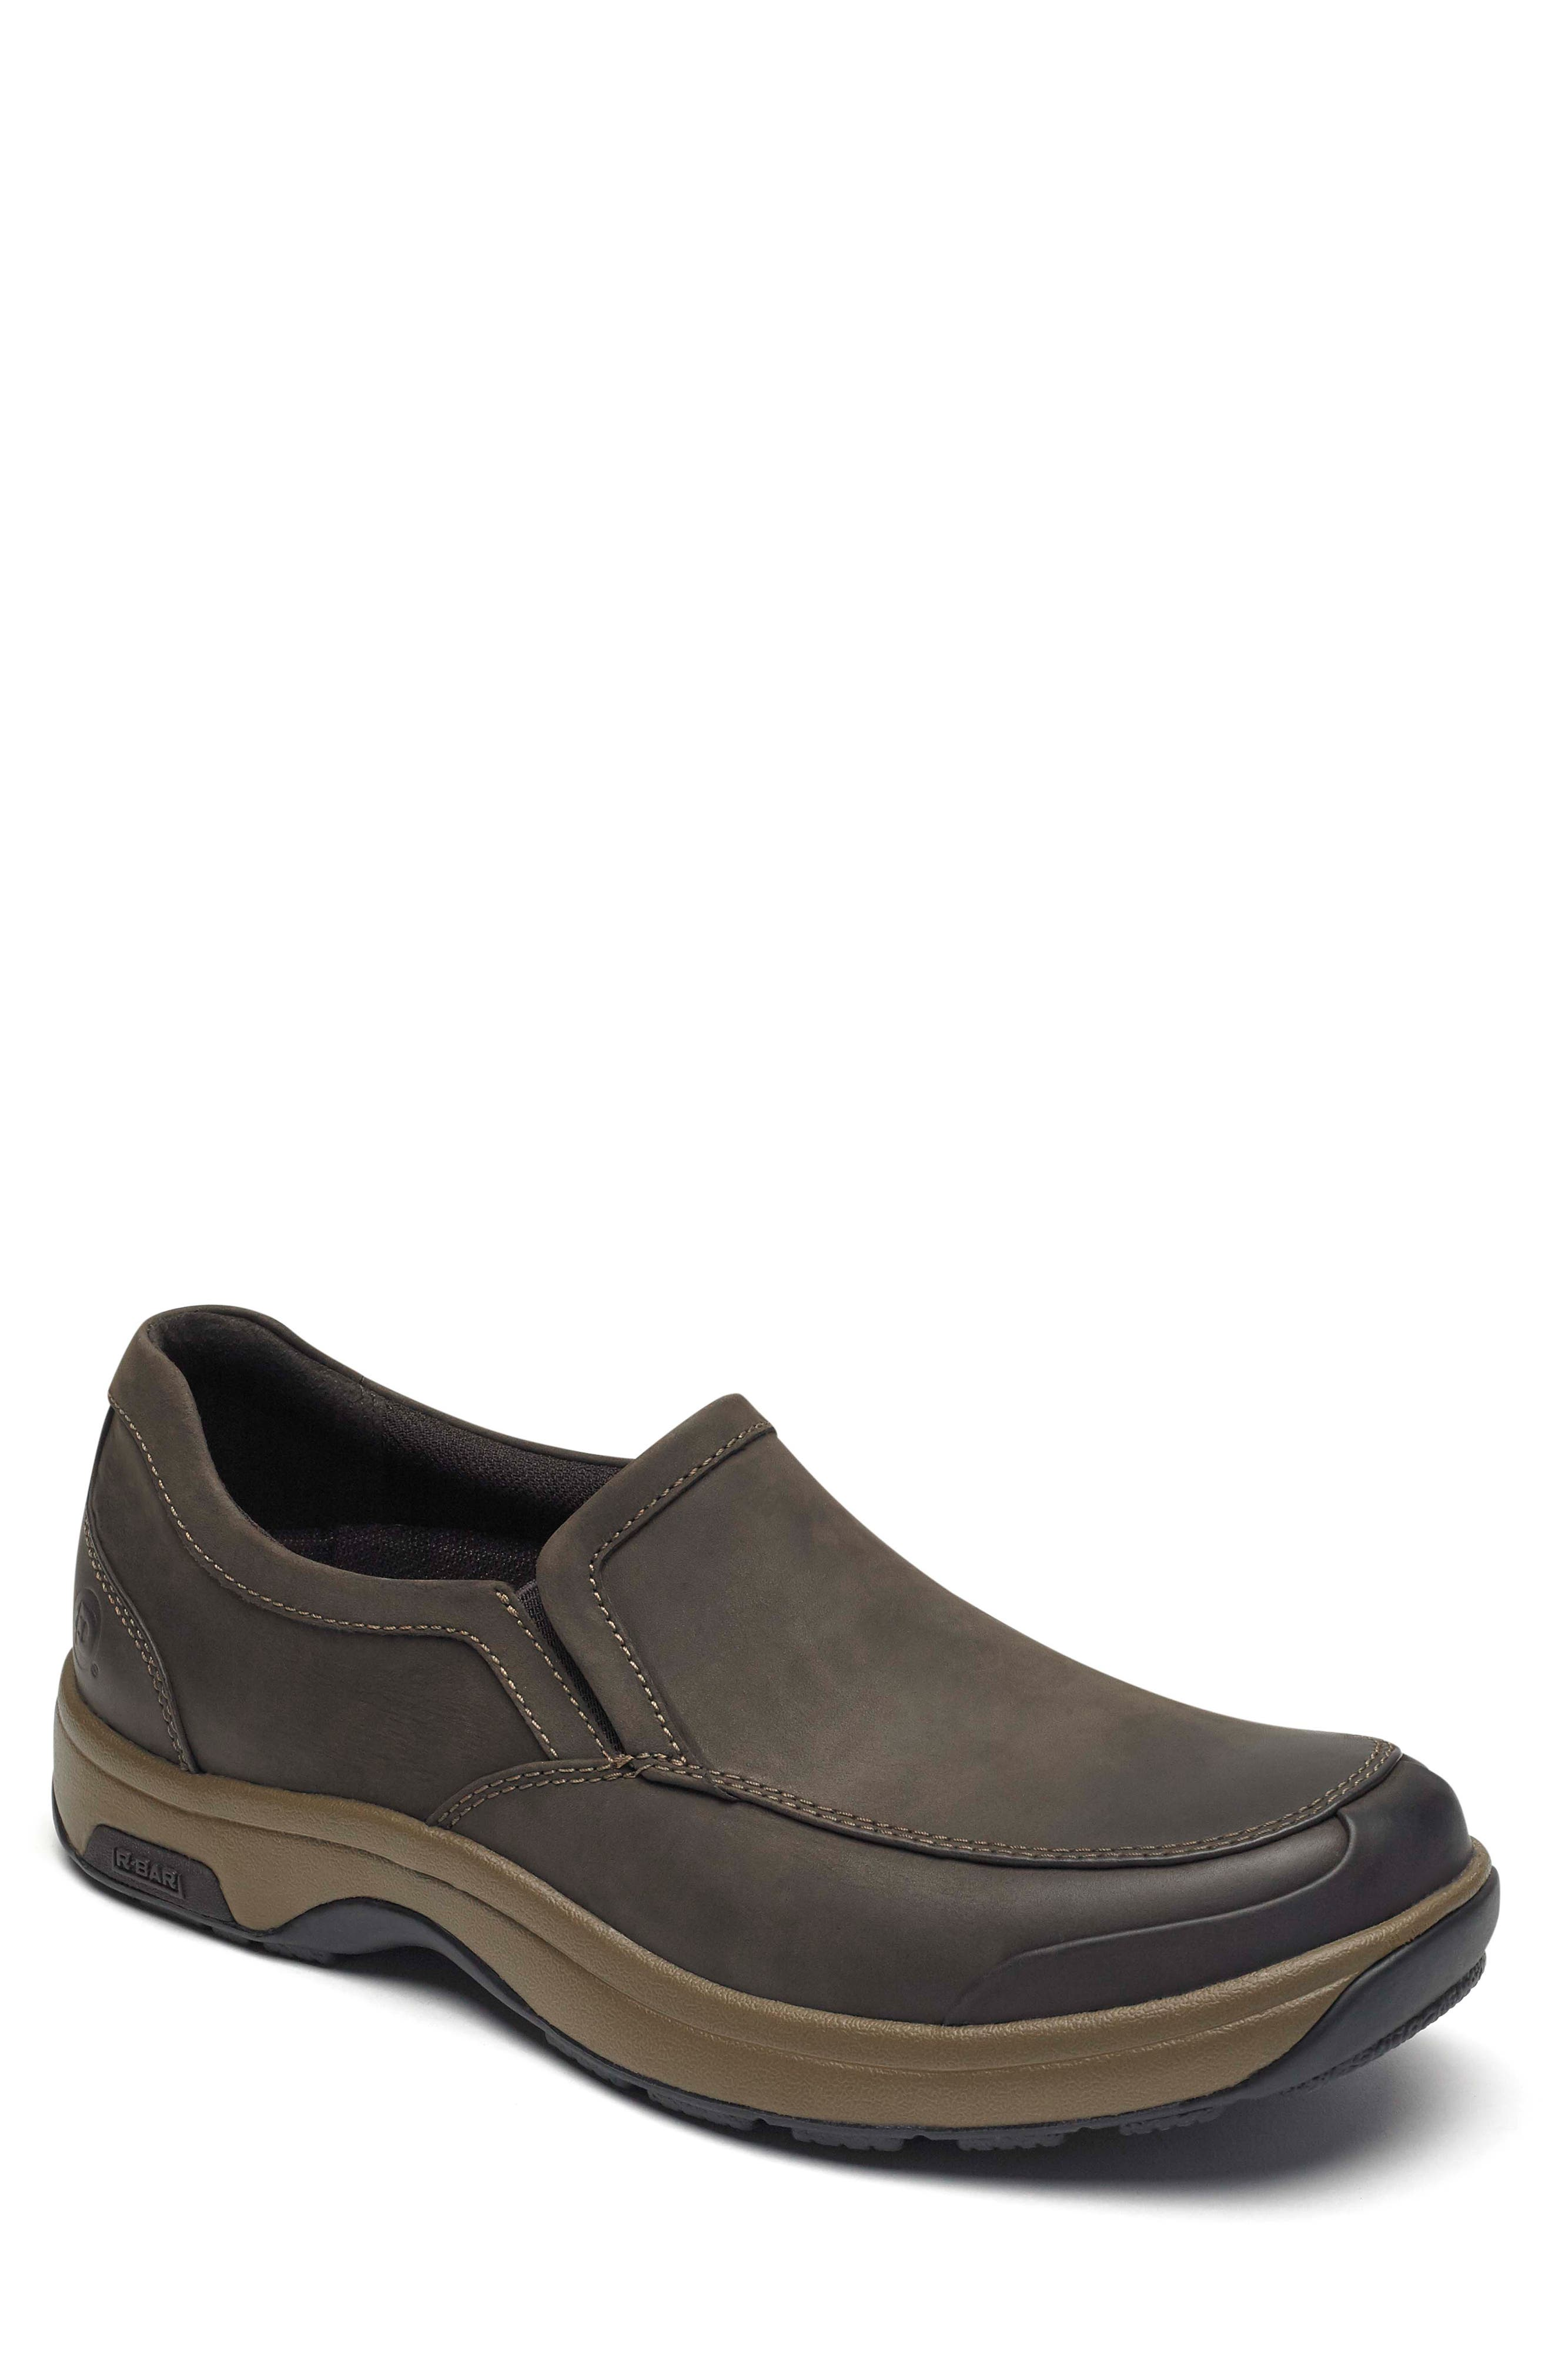 Battery Park Waterproof Slip-On,                             Main thumbnail 1, color,                             BROWN LEATHER